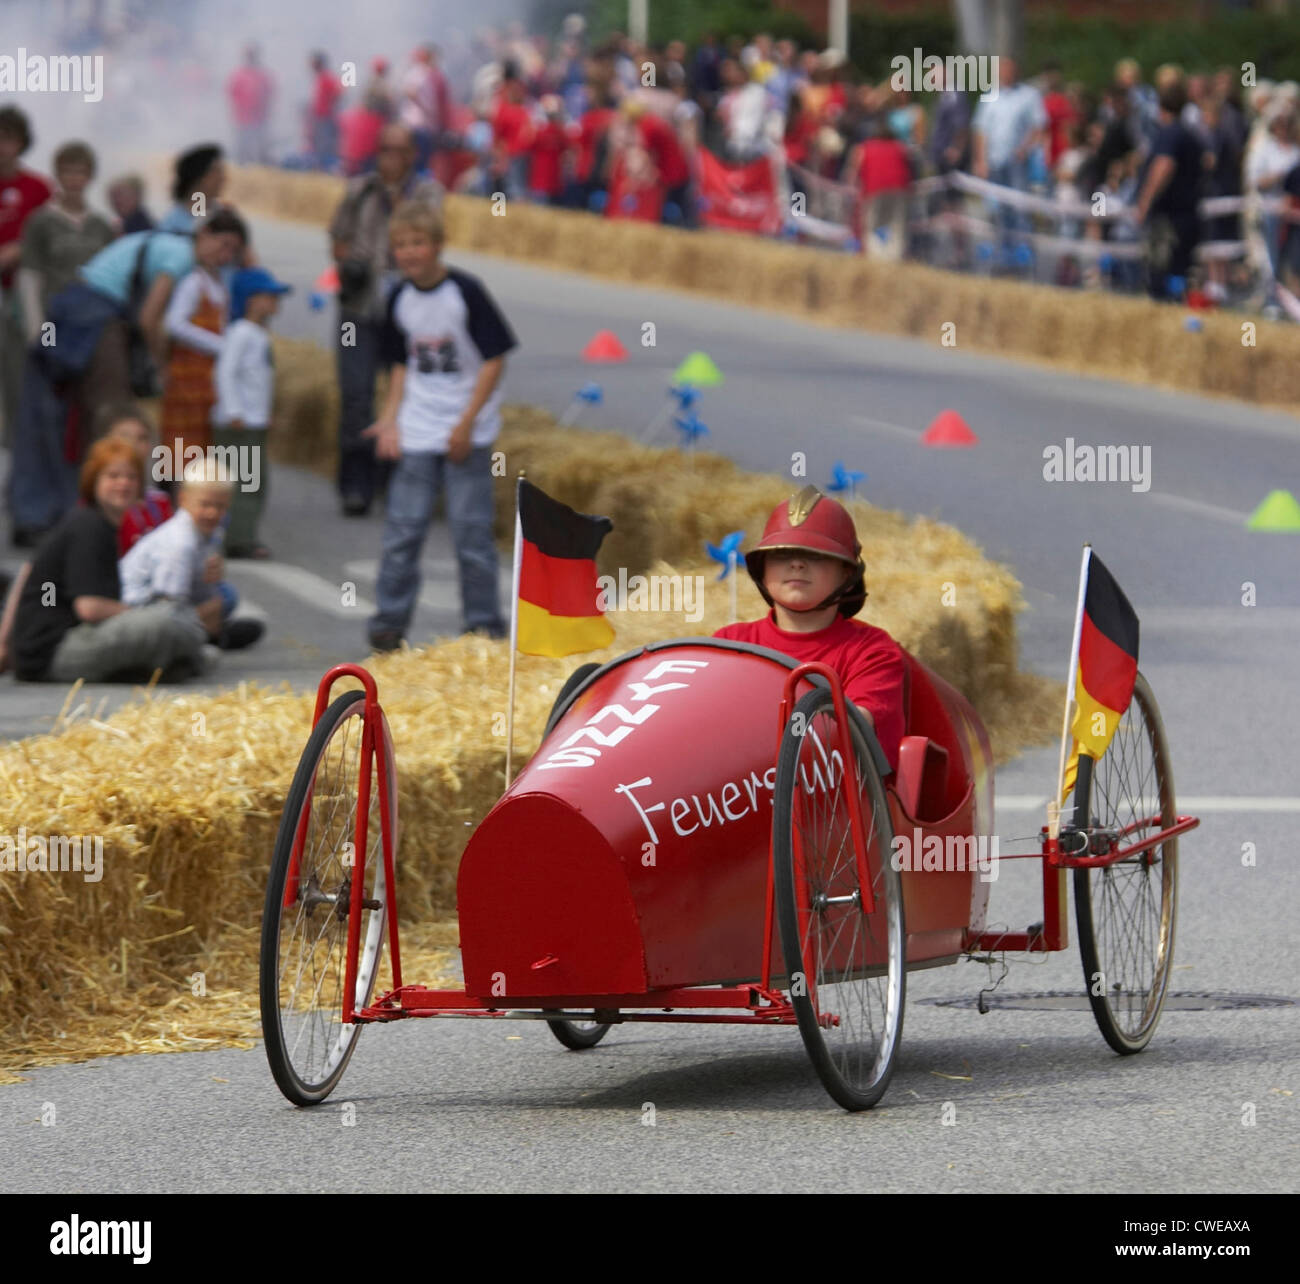 Red Bull Soap Box Derby >> Children with Soapbox Race Stock Photo: 50103042 - Alamy